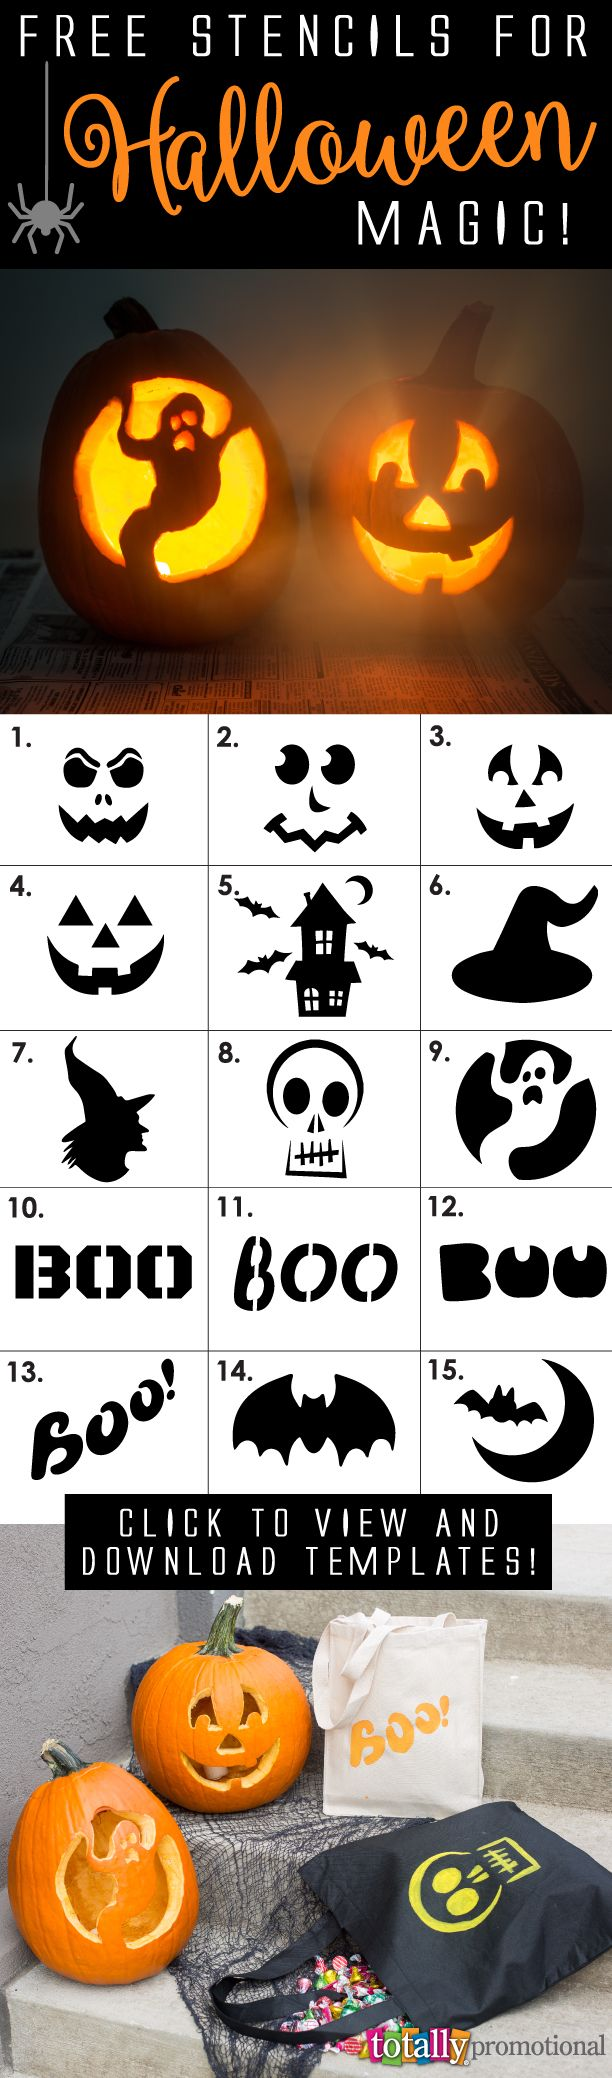 free pumpkin stencils for halloween magic totally blog